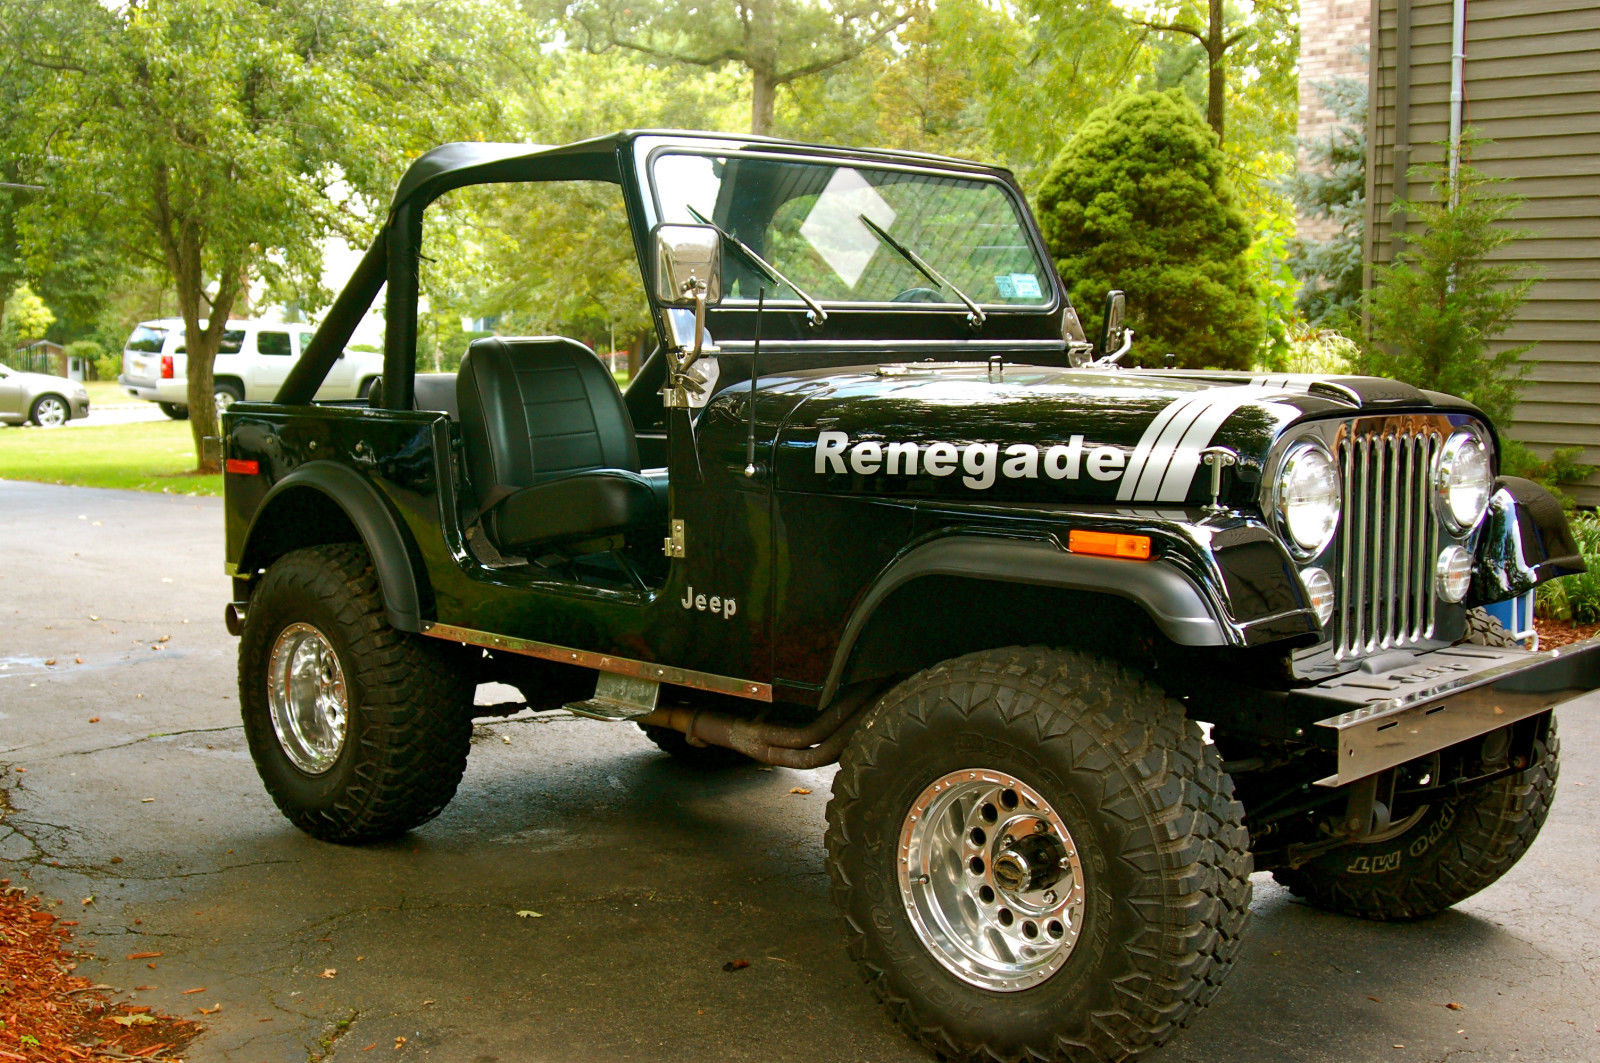 1978 jeep cj7 renegade restored clean v8 classic jeep other 1978 for sale. Black Bedroom Furniture Sets. Home Design Ideas